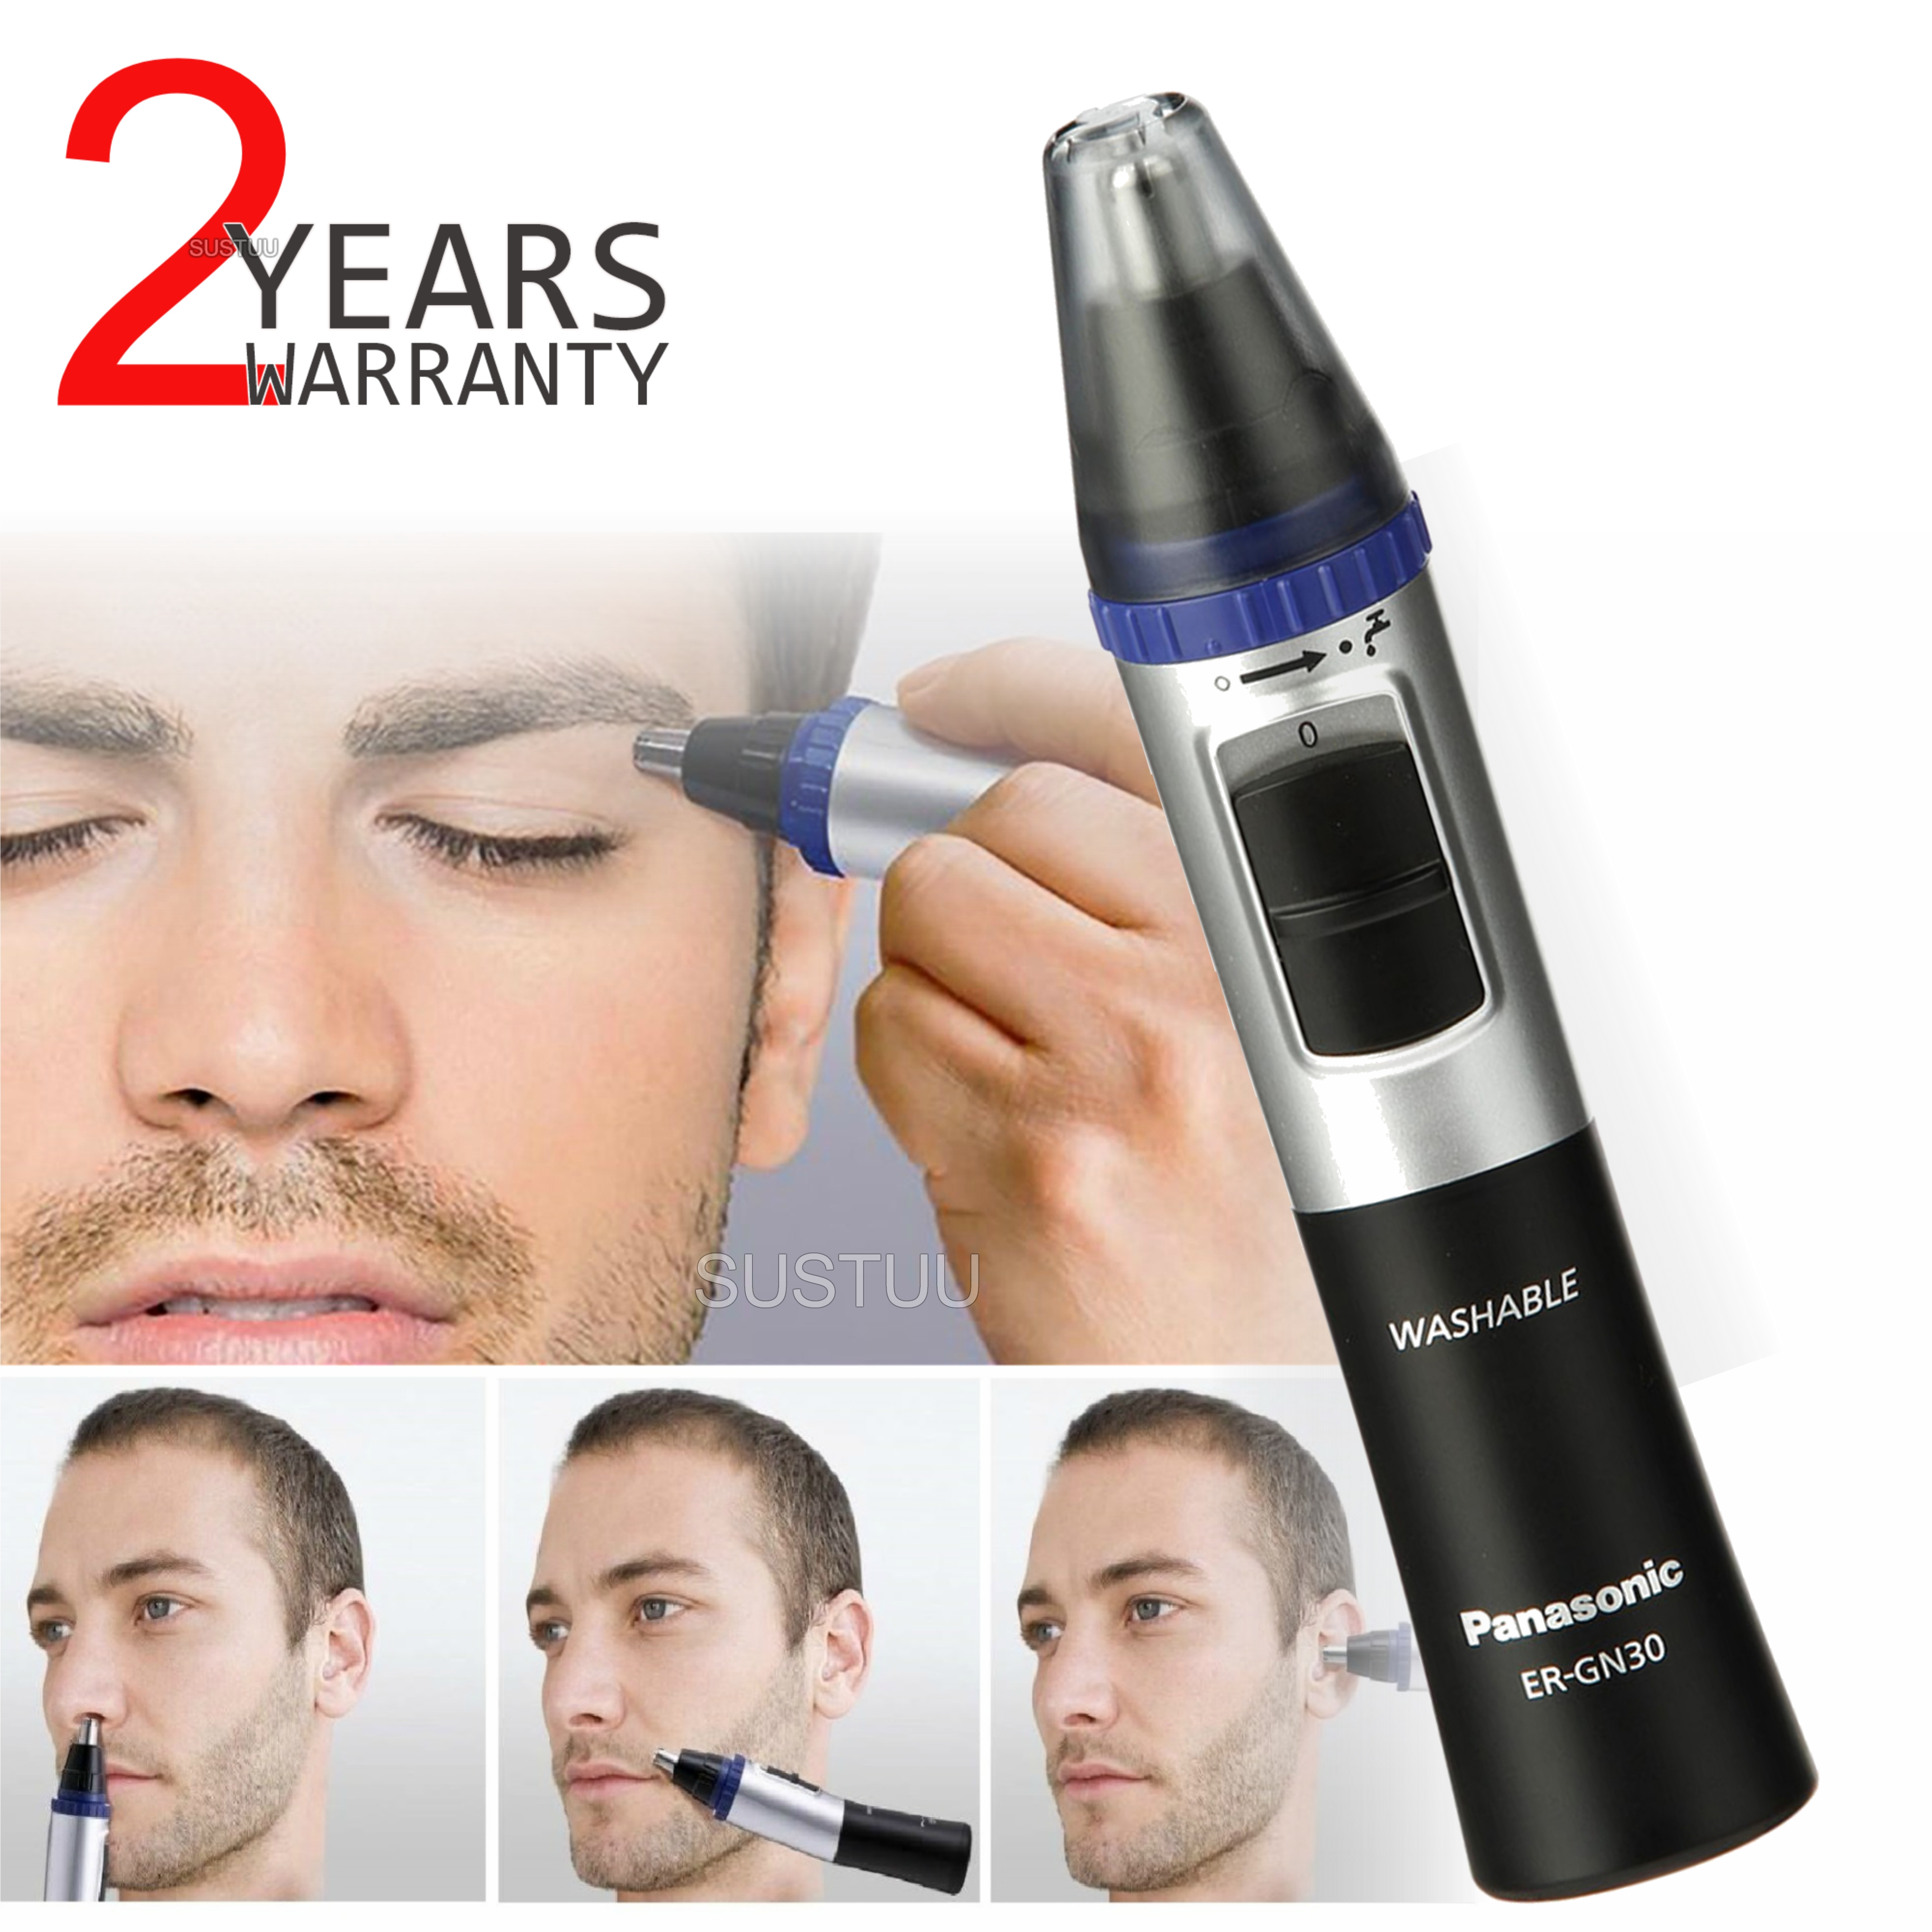 Panasonic ERGN30 | Nose Facial and Ear Hair Eyebrows Trimmer | Wet & Dry | Washable |